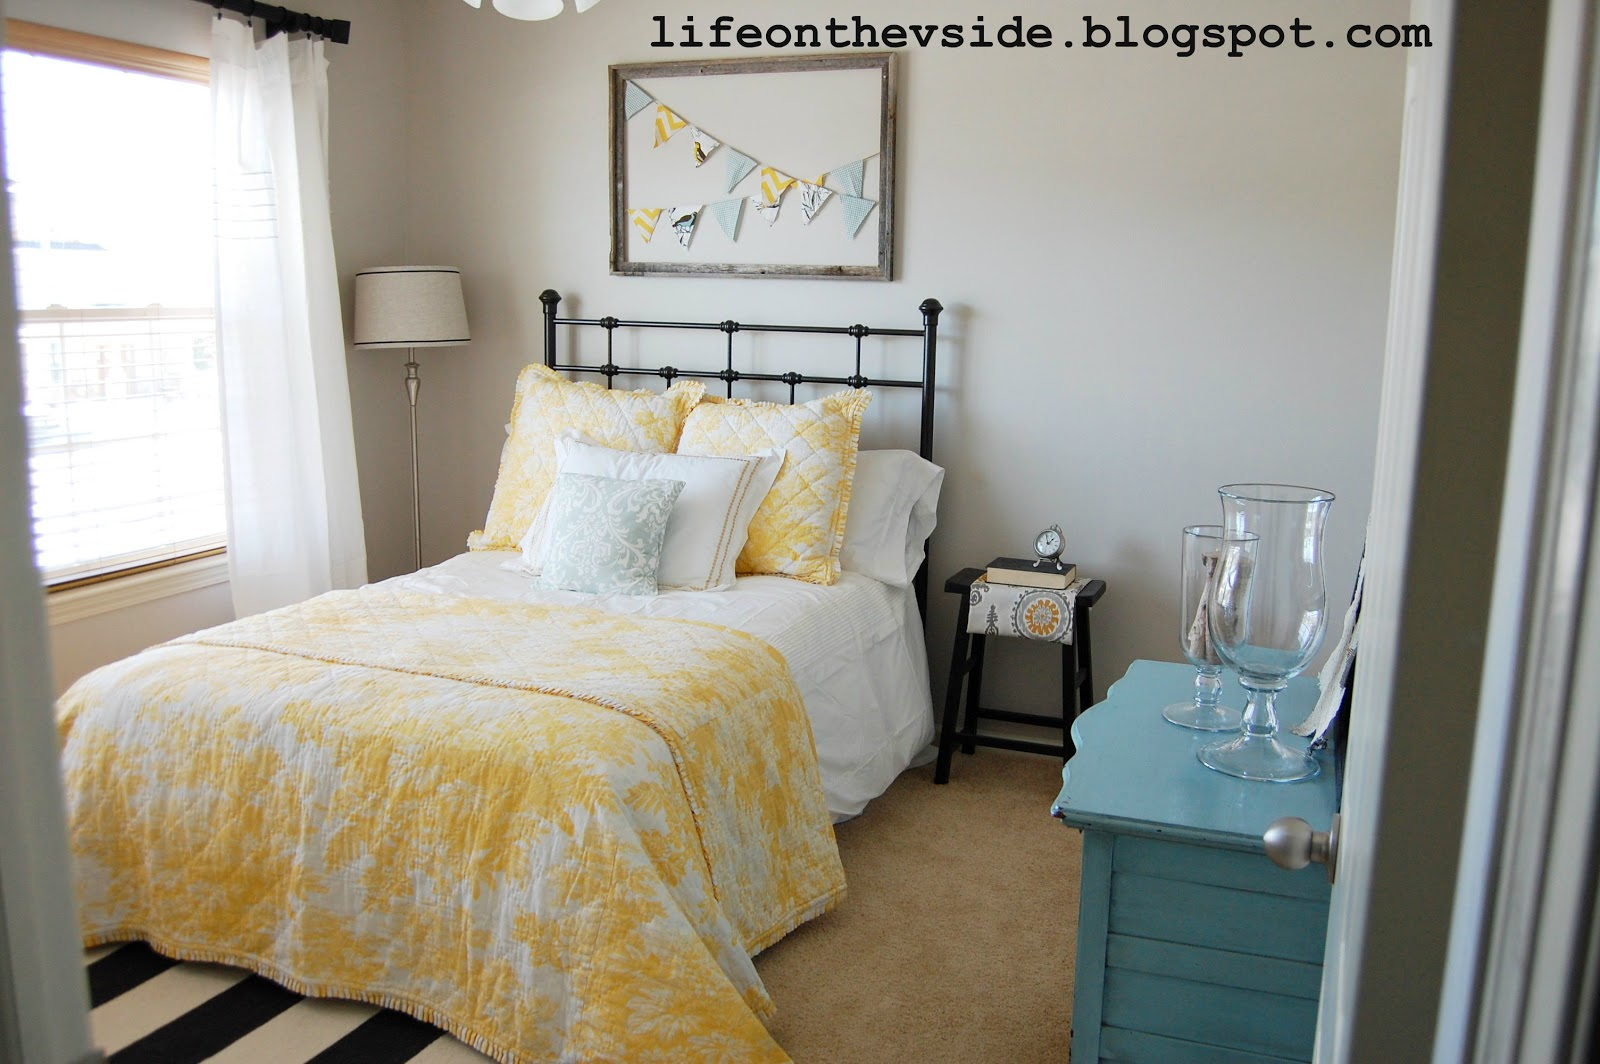 Agreeable Gray Living Room : On the V Side: Guest Room Redo - Before & After